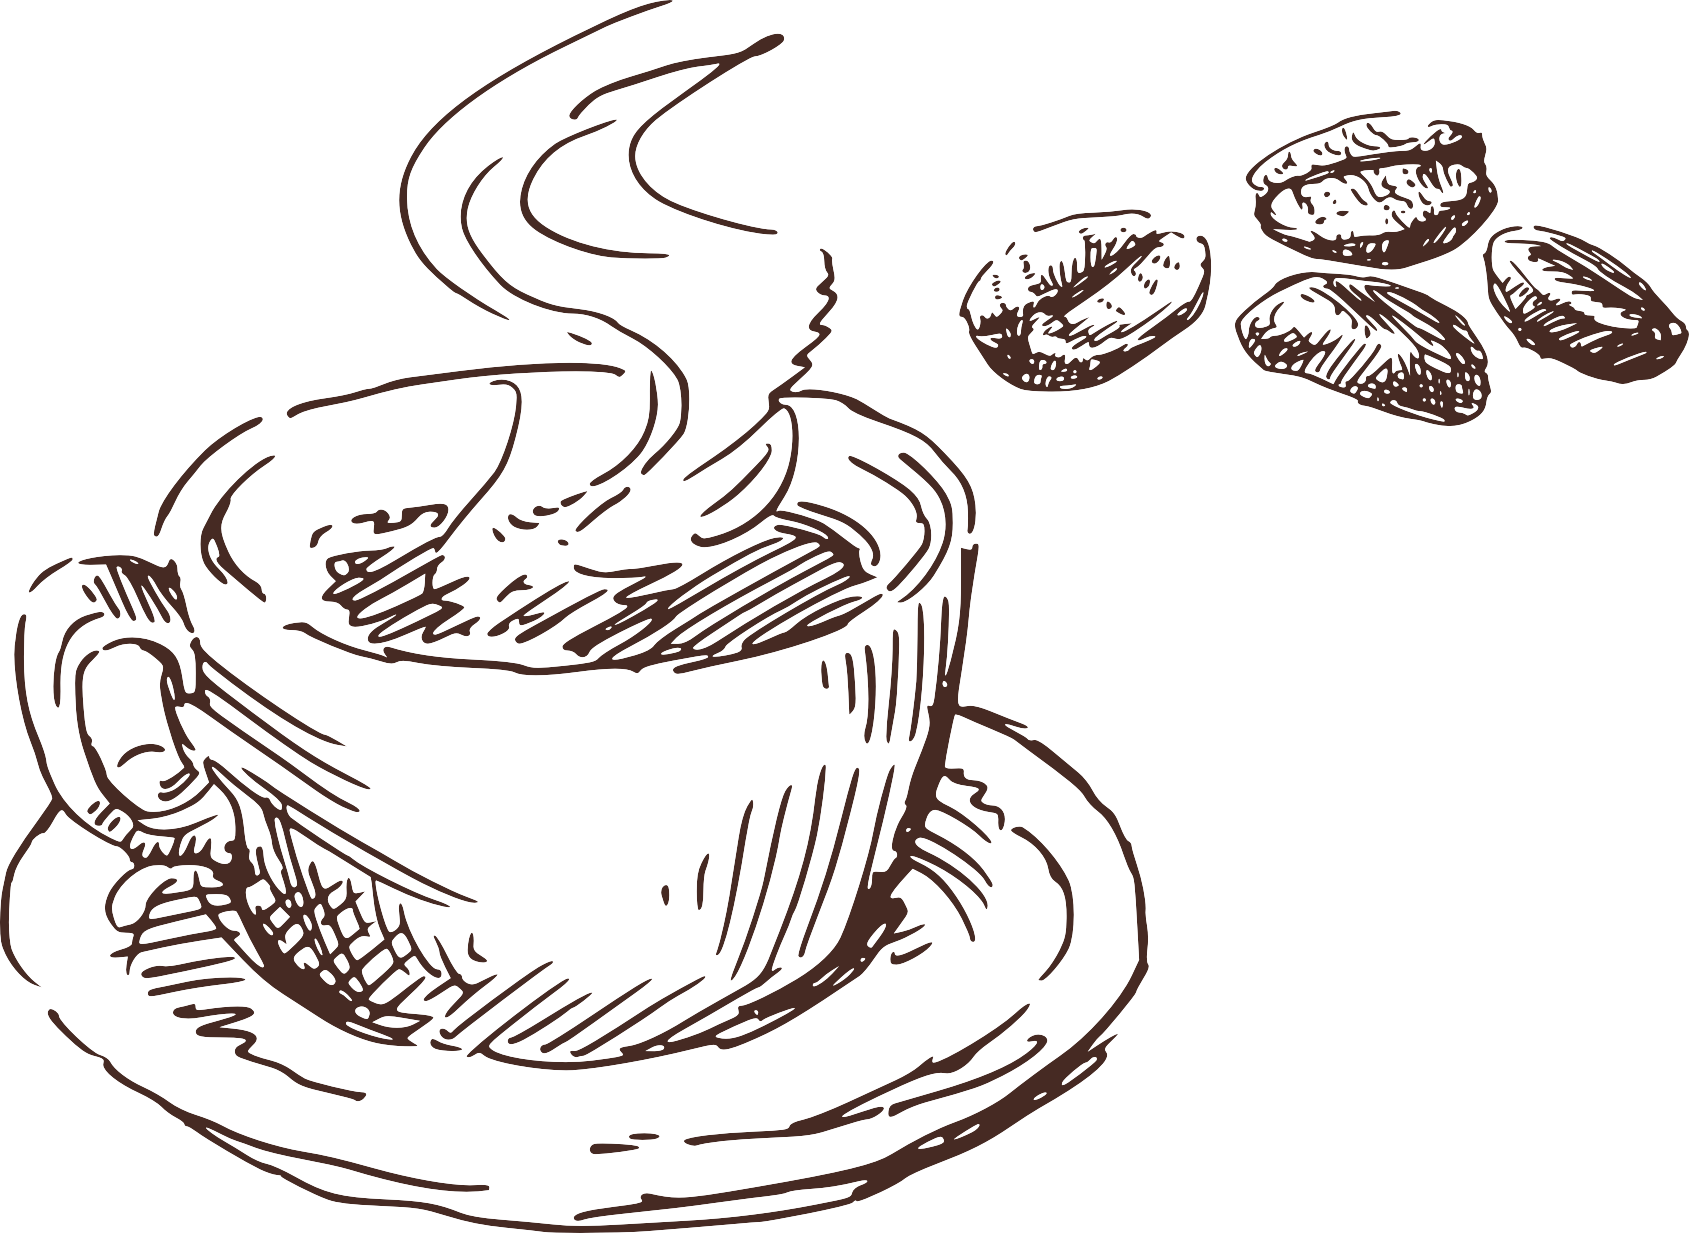 Coffe drawing black and white. Coffee cup cafe menu